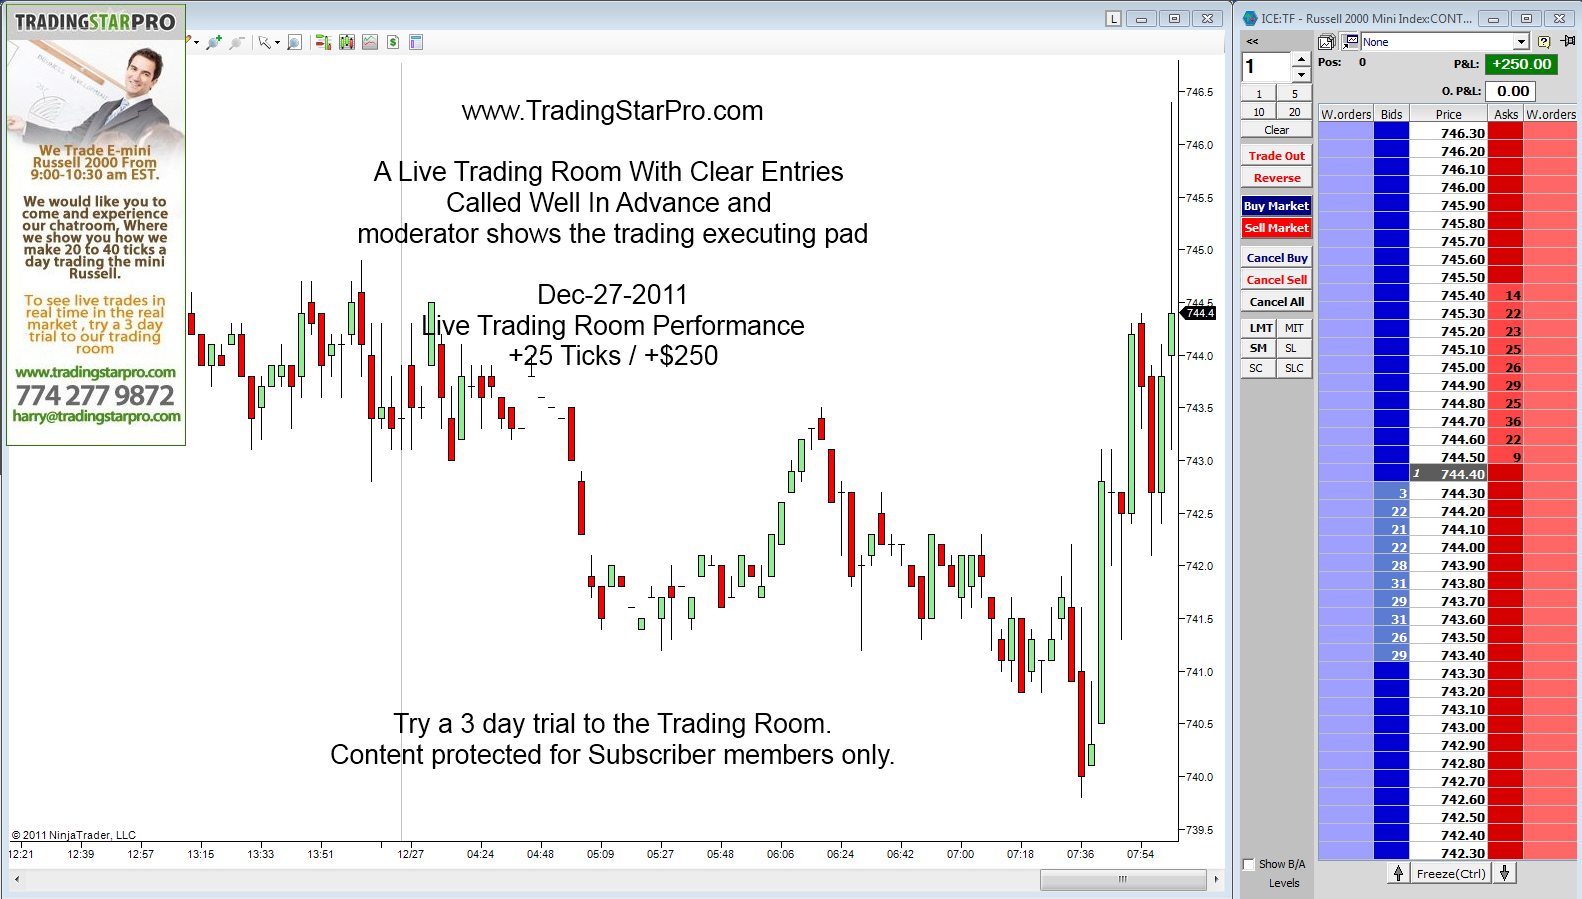 futures live trading room tradingstarpro live trading room performance dec 27 2011 14676